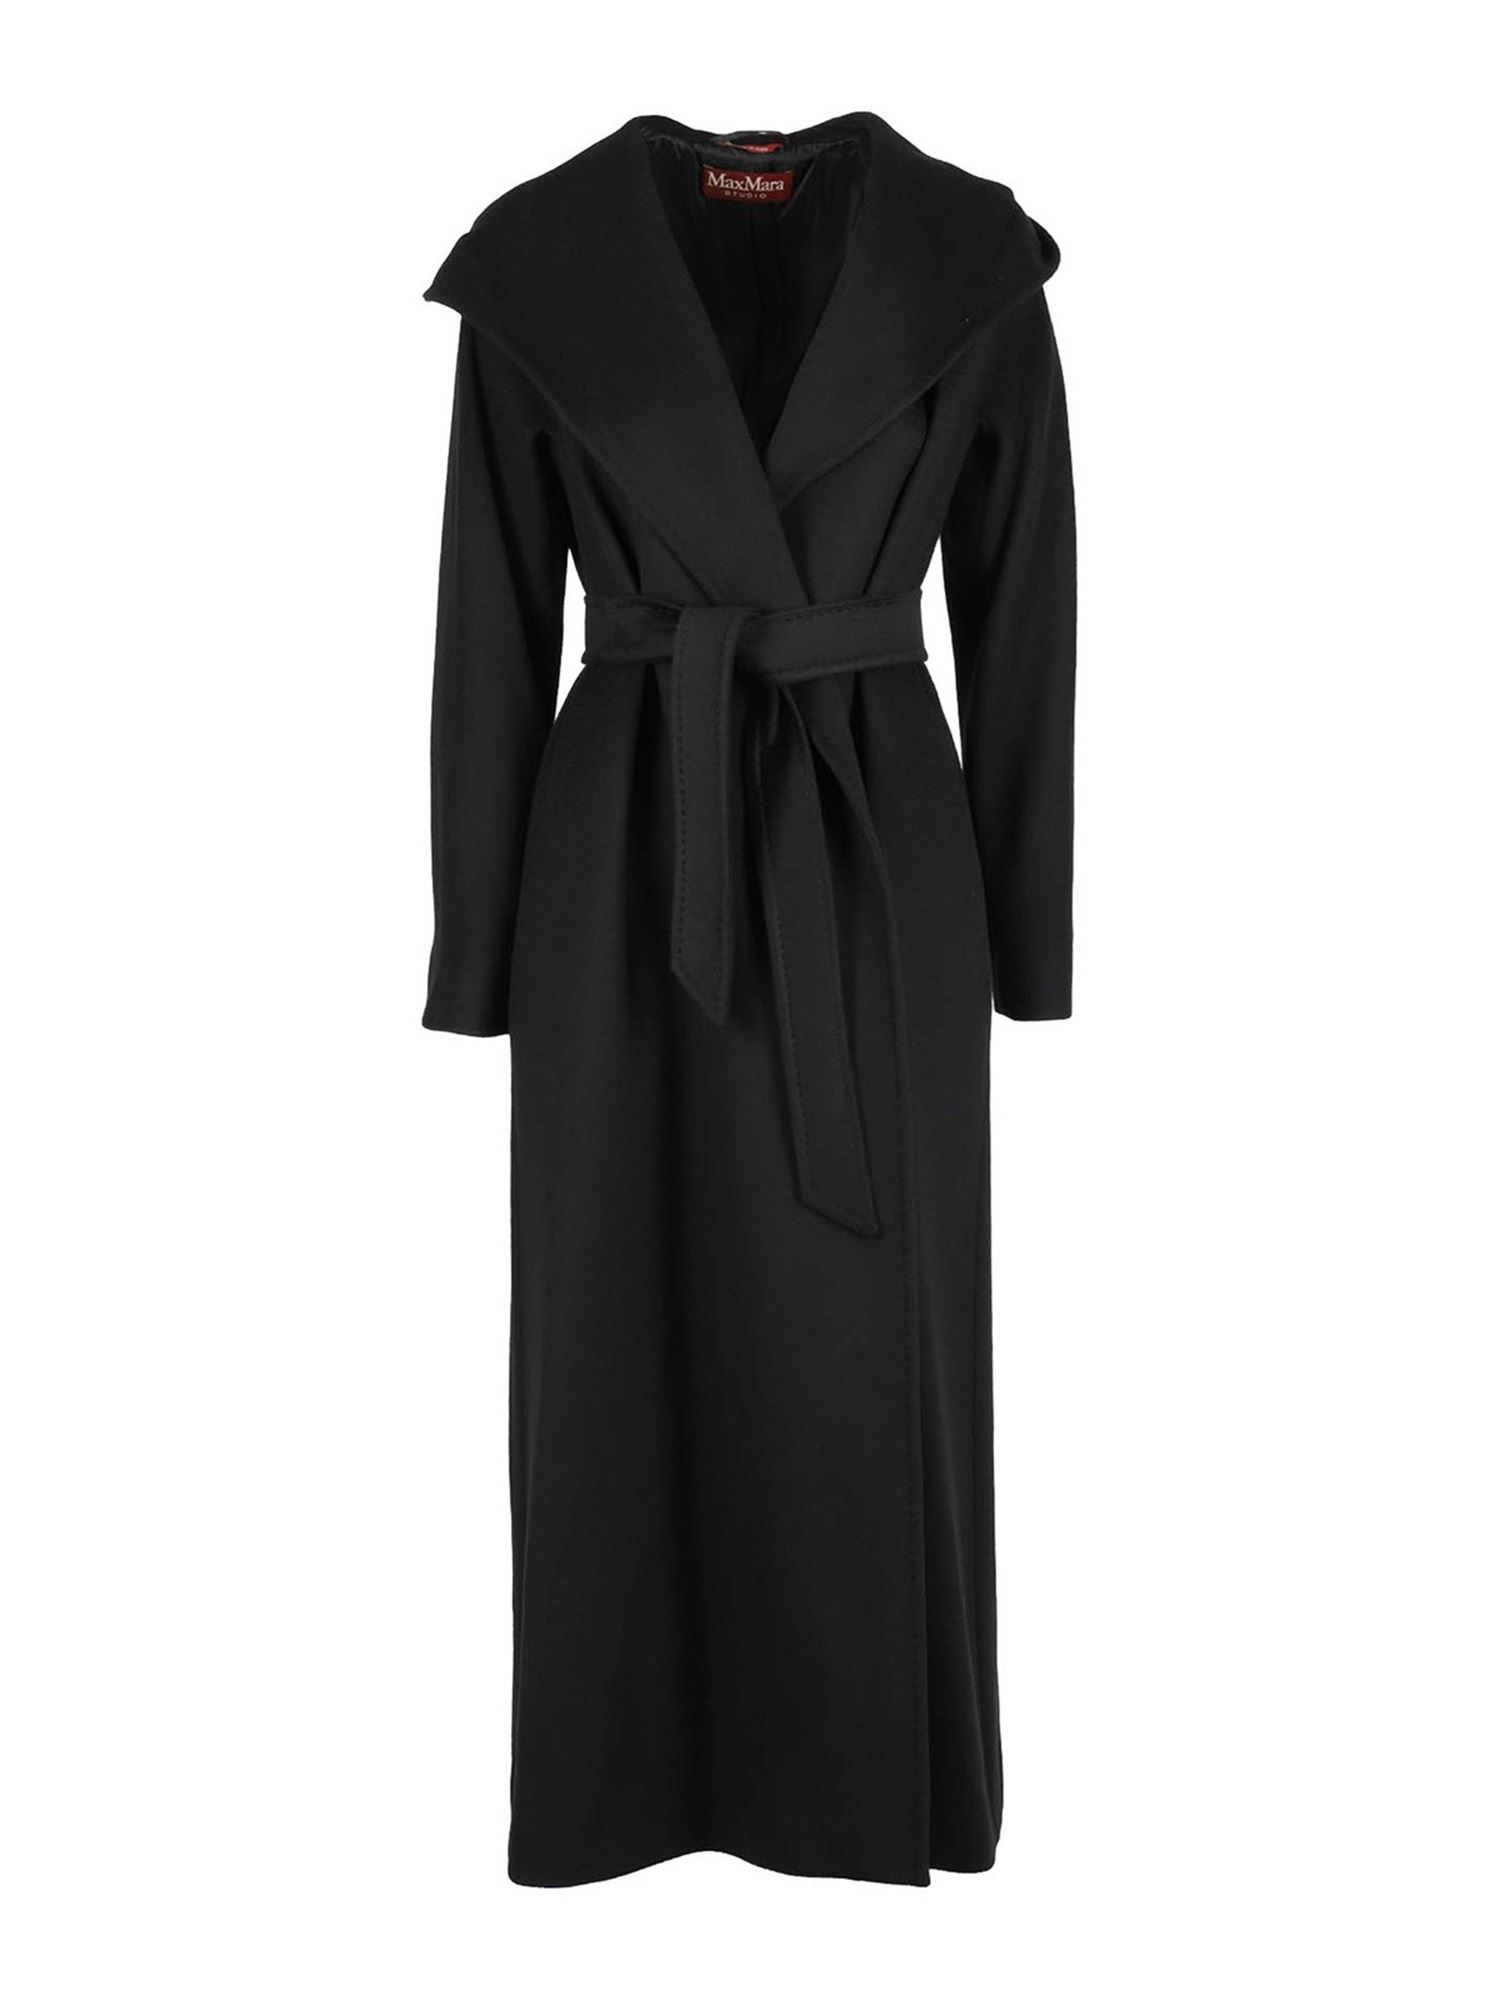 Max Mara DANTON 3 PURE WOOL COAT IN BLACK